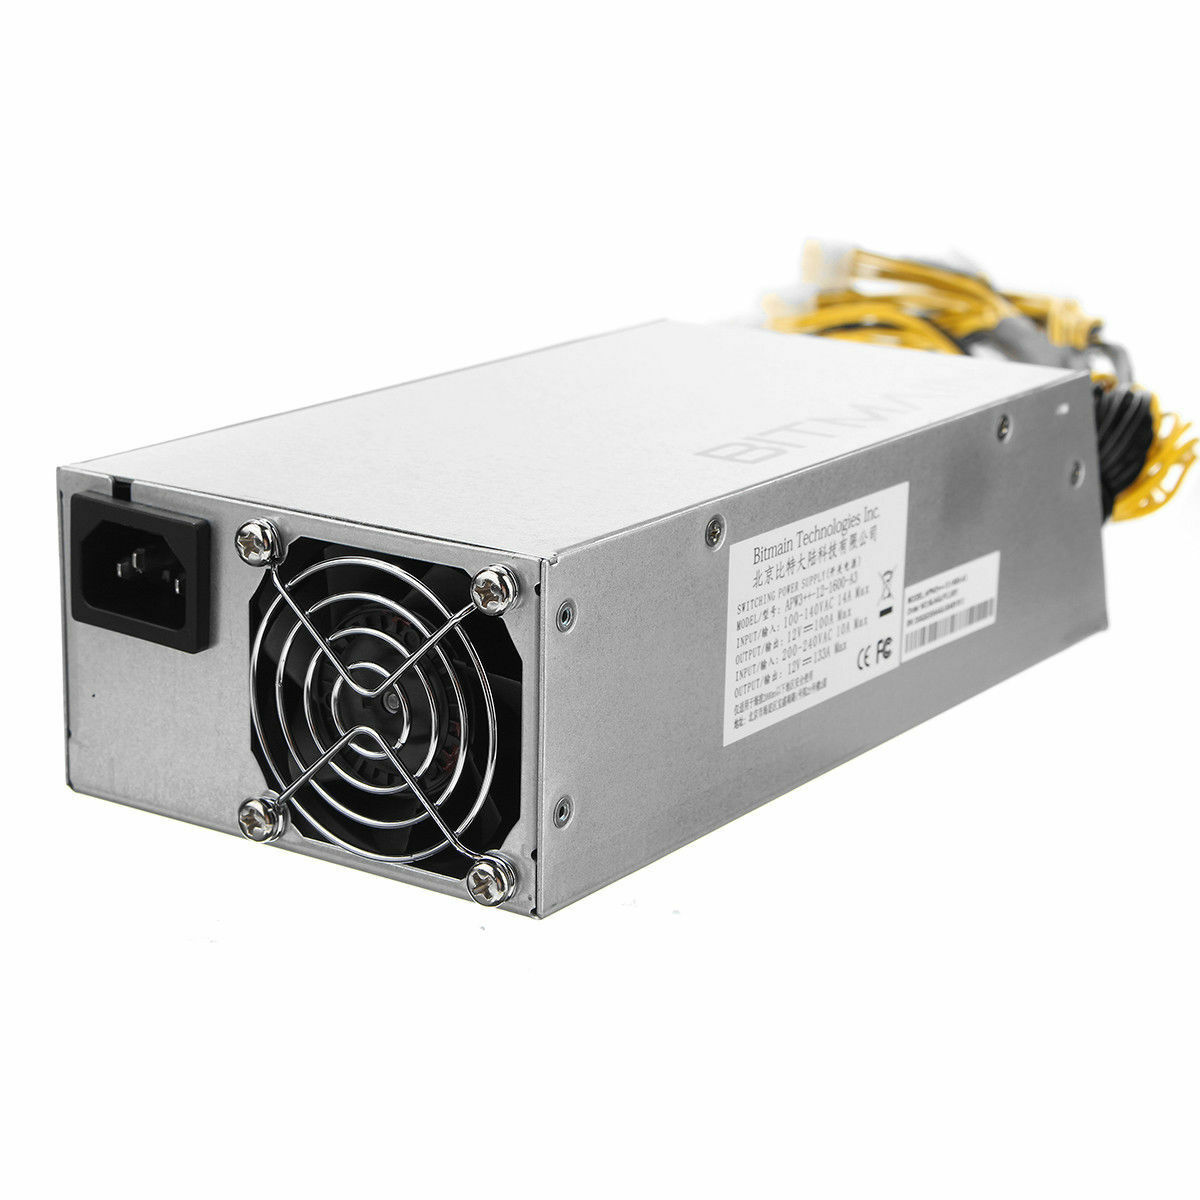 Original antminer apw3++ psu 1600w power supply for bitmain d3 s9 s7 l3 b3 x3 t9